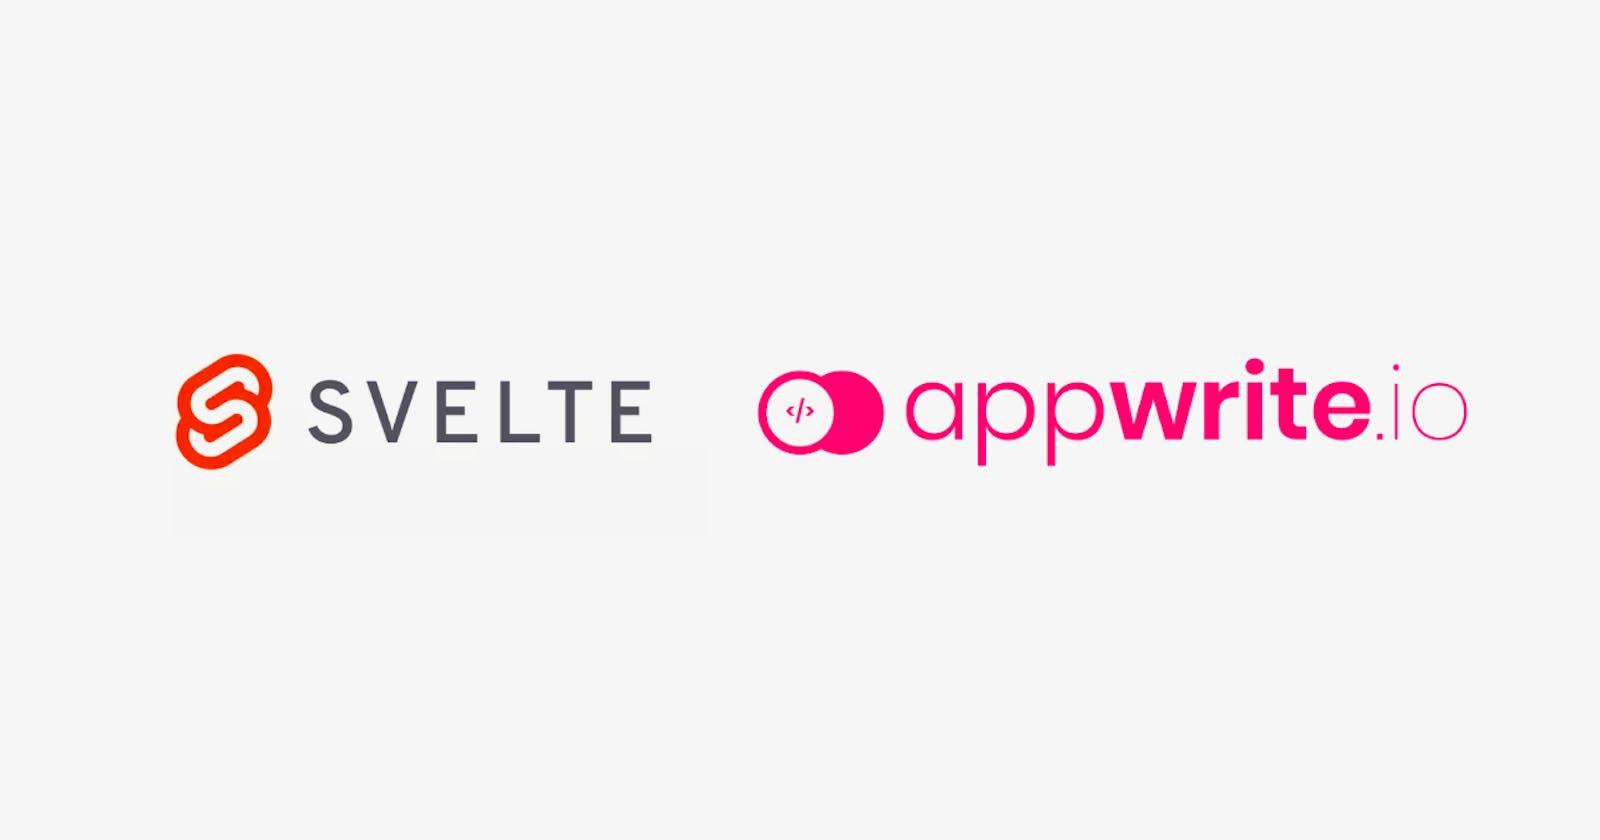 Appwrite Releases a Native Svelte SDK for Its Open-Source BaaS